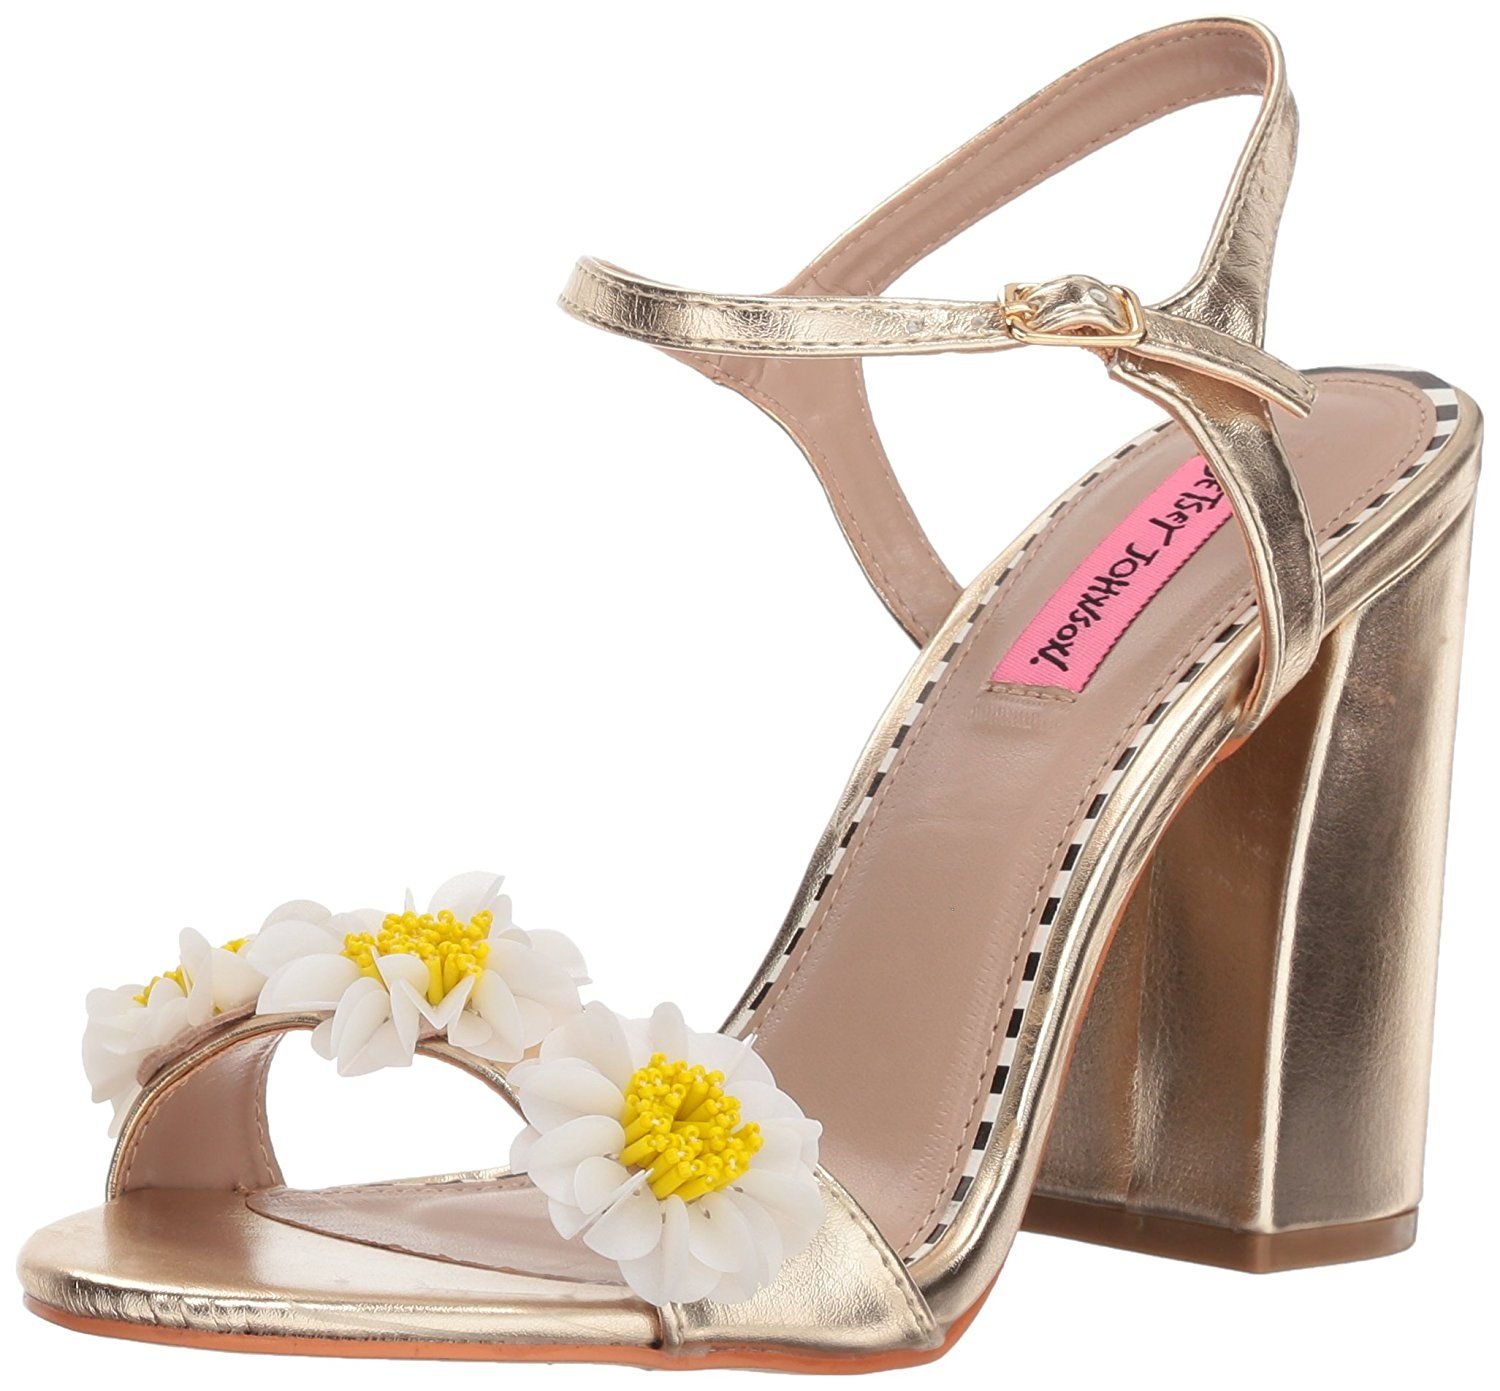 0a5030b98603 Betsey Johnson Women s Sedona Heeled Sandal. The sedona is a study  block-heeled sandal that will give your outfit a dash of floral fun. Women s  Shoes